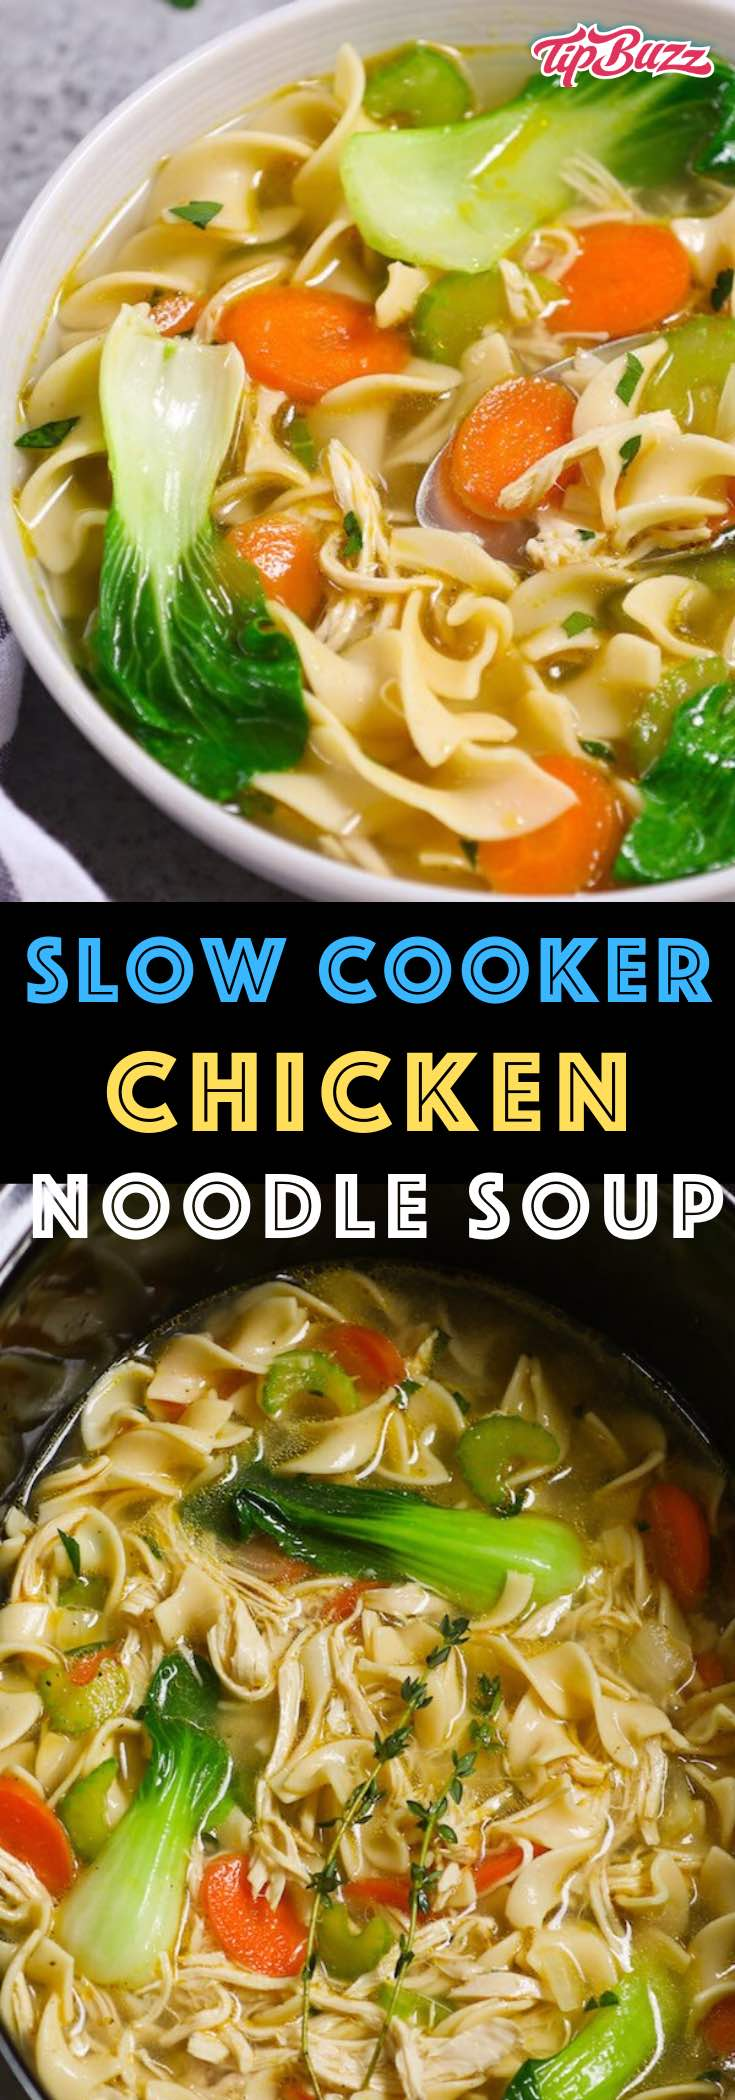 This Slow Cooker Chicken Noodle Soup is the easiest and most unbelievably delicious soup you'll ever make! It's a comforting and nourishing meal with only 10 minutes of prep and the crock pot does the rest. #ChickenNoodleSoup #CrockpotChickenNoodleSoup #SlowcookerChickenNoodleSoup